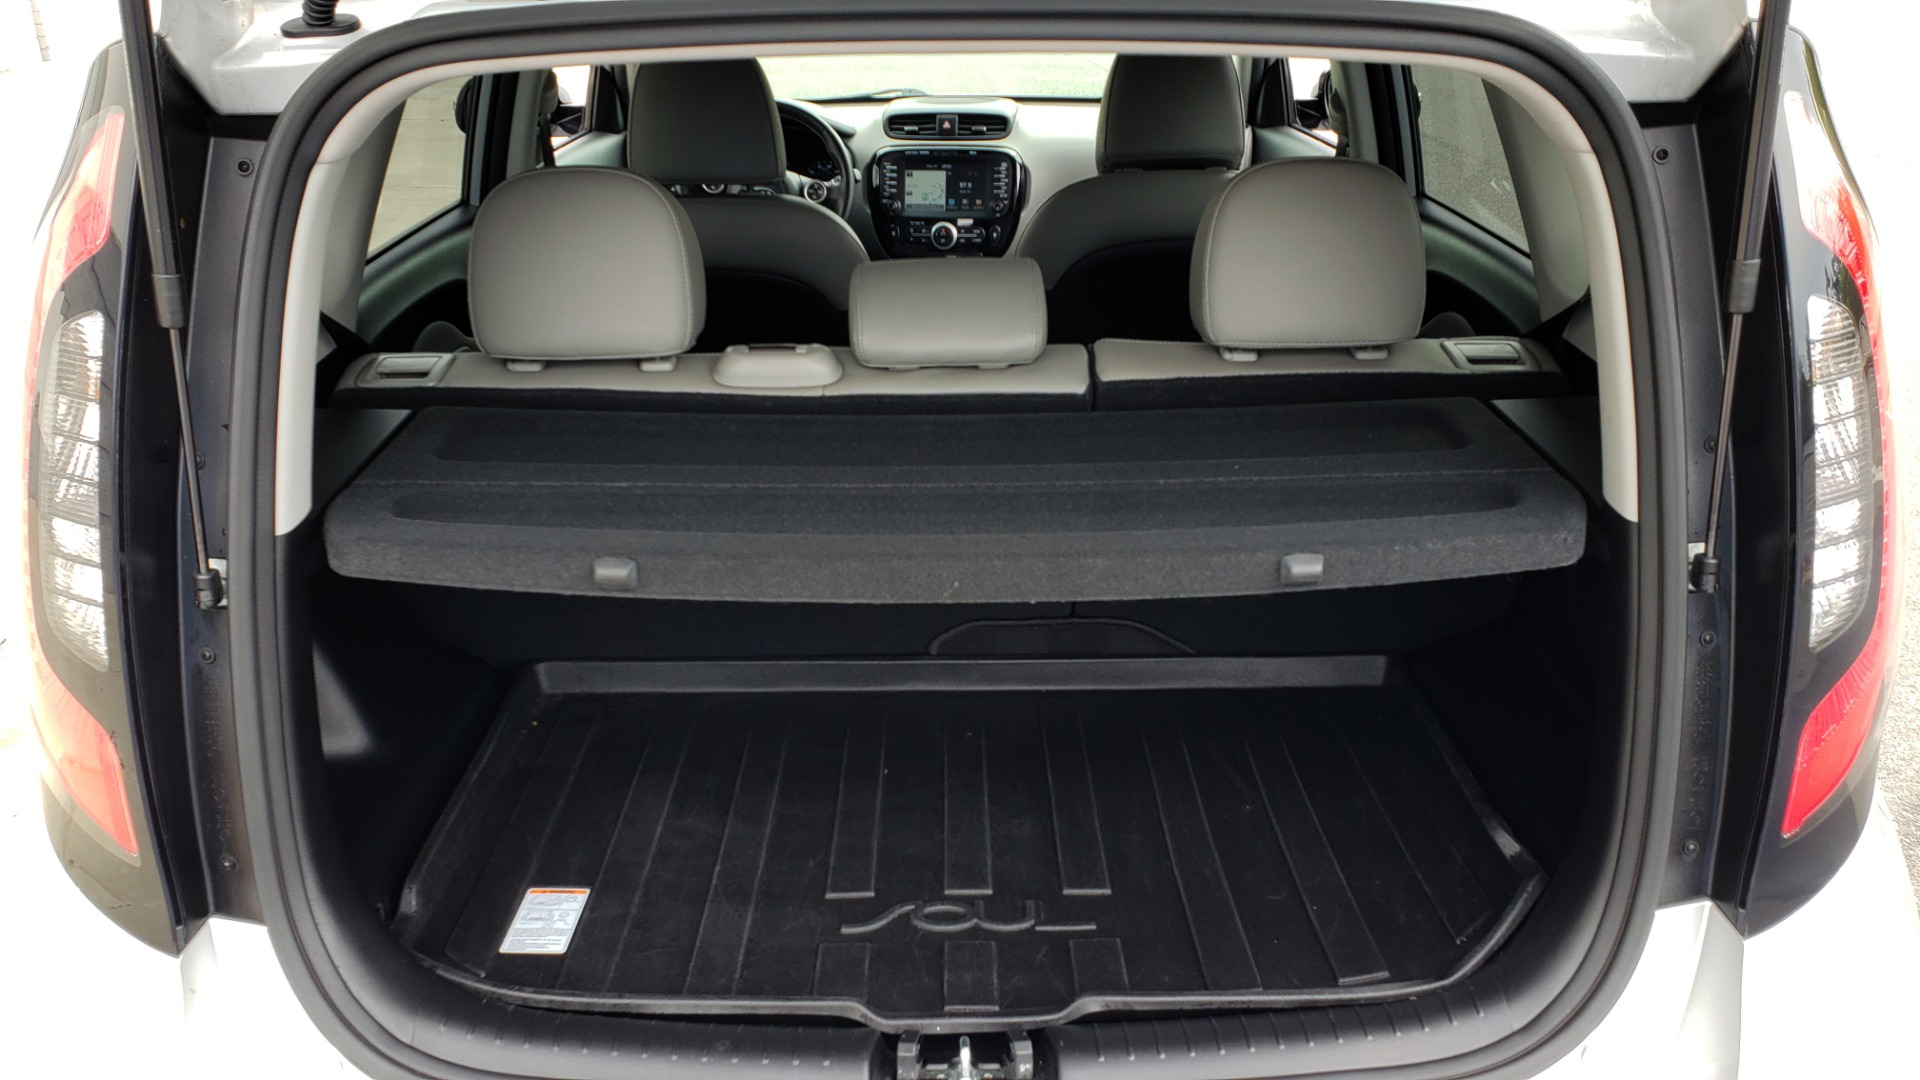 Used 2017 Kia SOUL PLUS / NAV / SUNROOF / LEATHER / HTD STS / REARVIEW for sale $16,995 at Formula Imports in Charlotte NC 28227 13